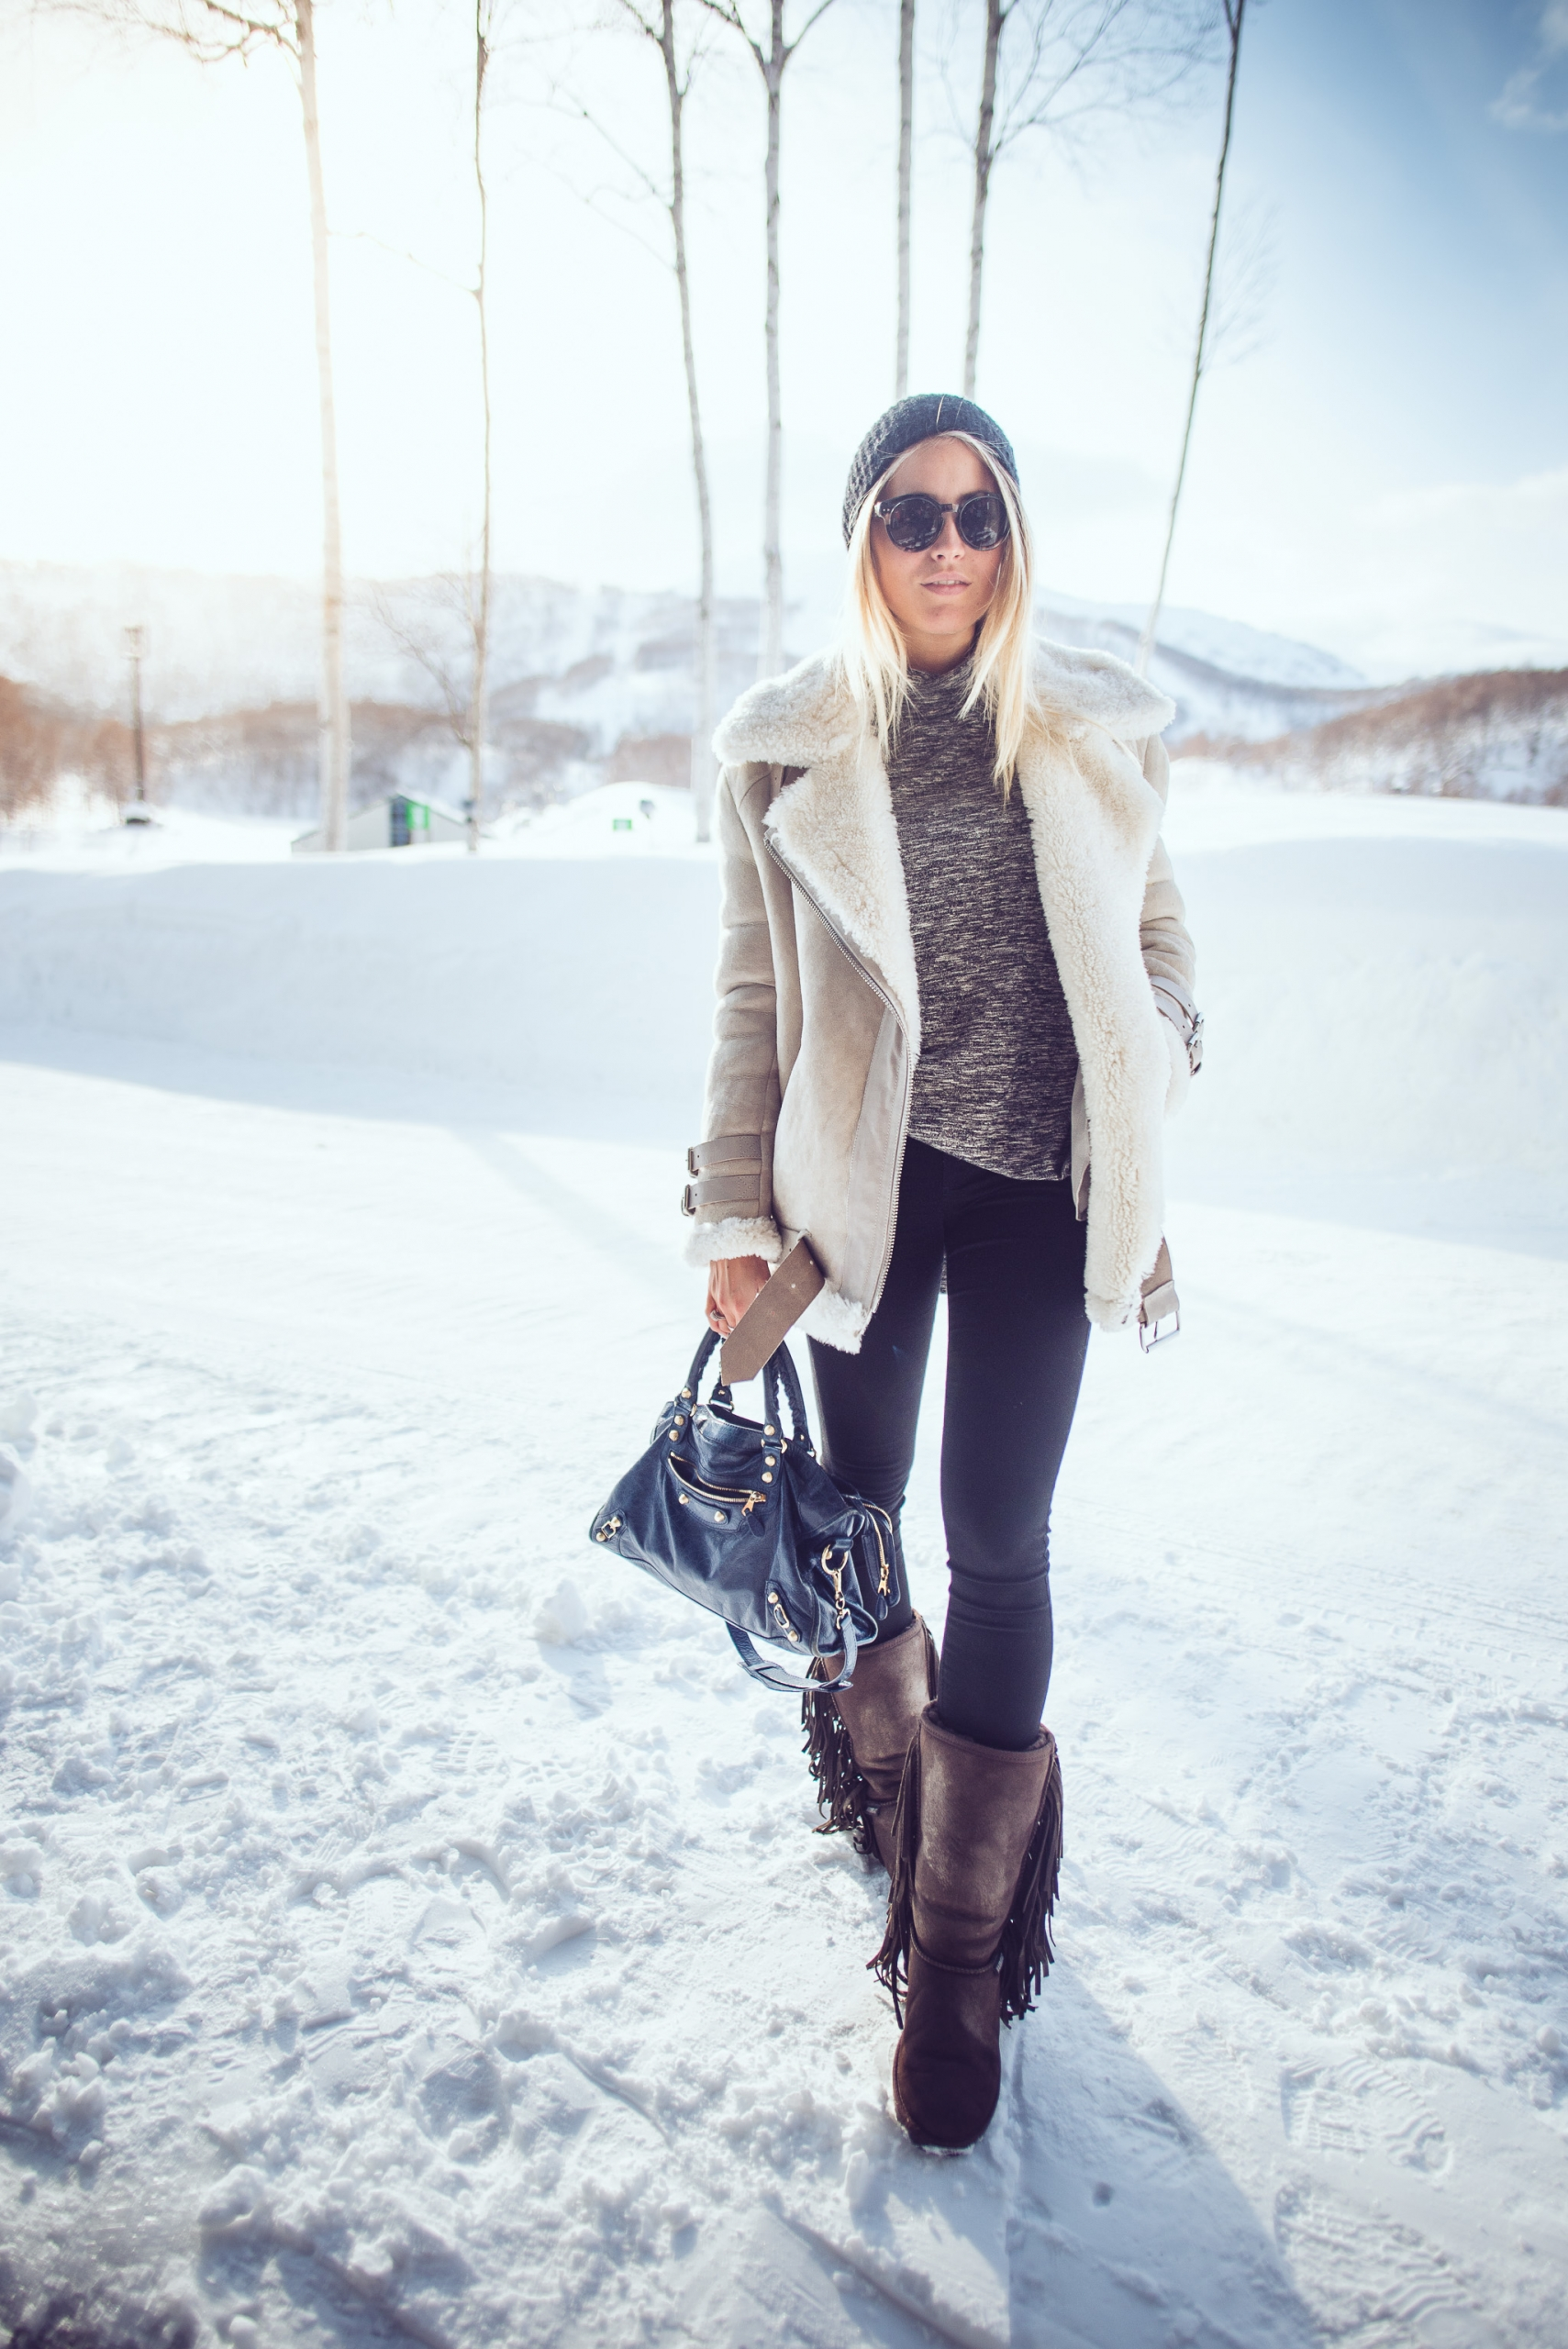 Janni Deler is wearing a shearling coat from Acne, grey top and sunglasses from Lindex, jeans from Nelly, bag from Balenciaga and the boots are from Warmbat